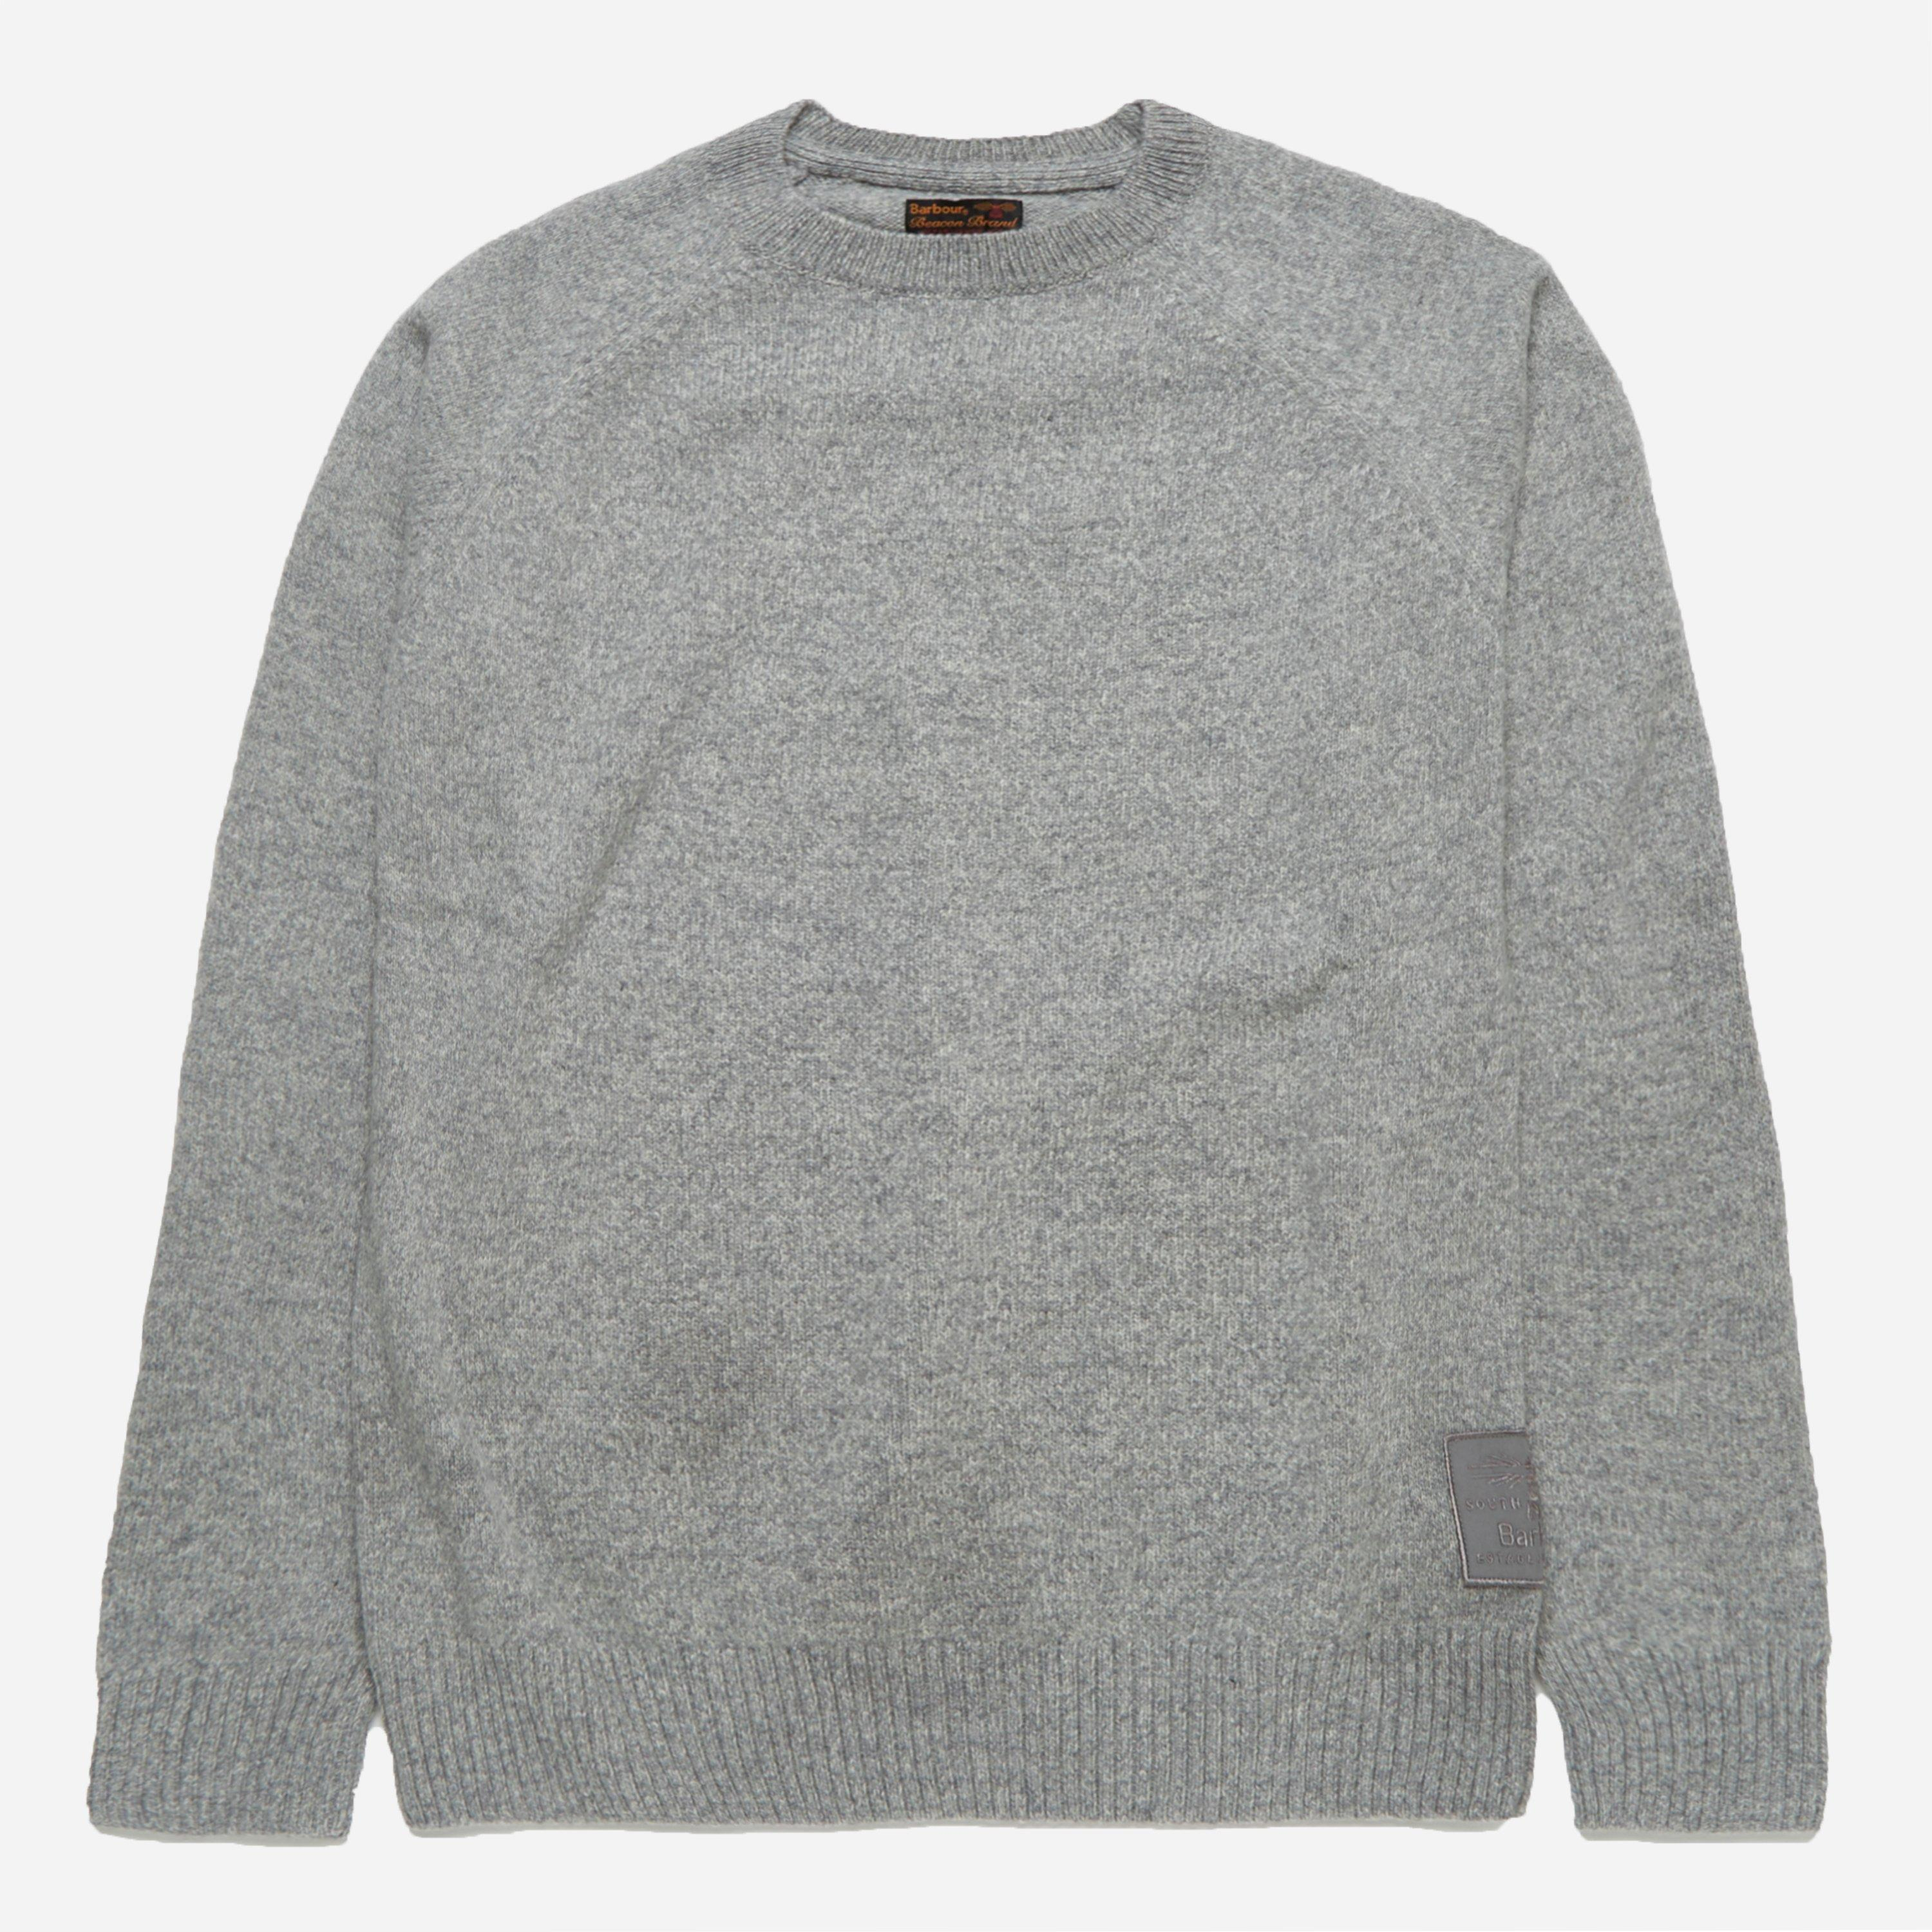 Barbour Staple Crew Knit